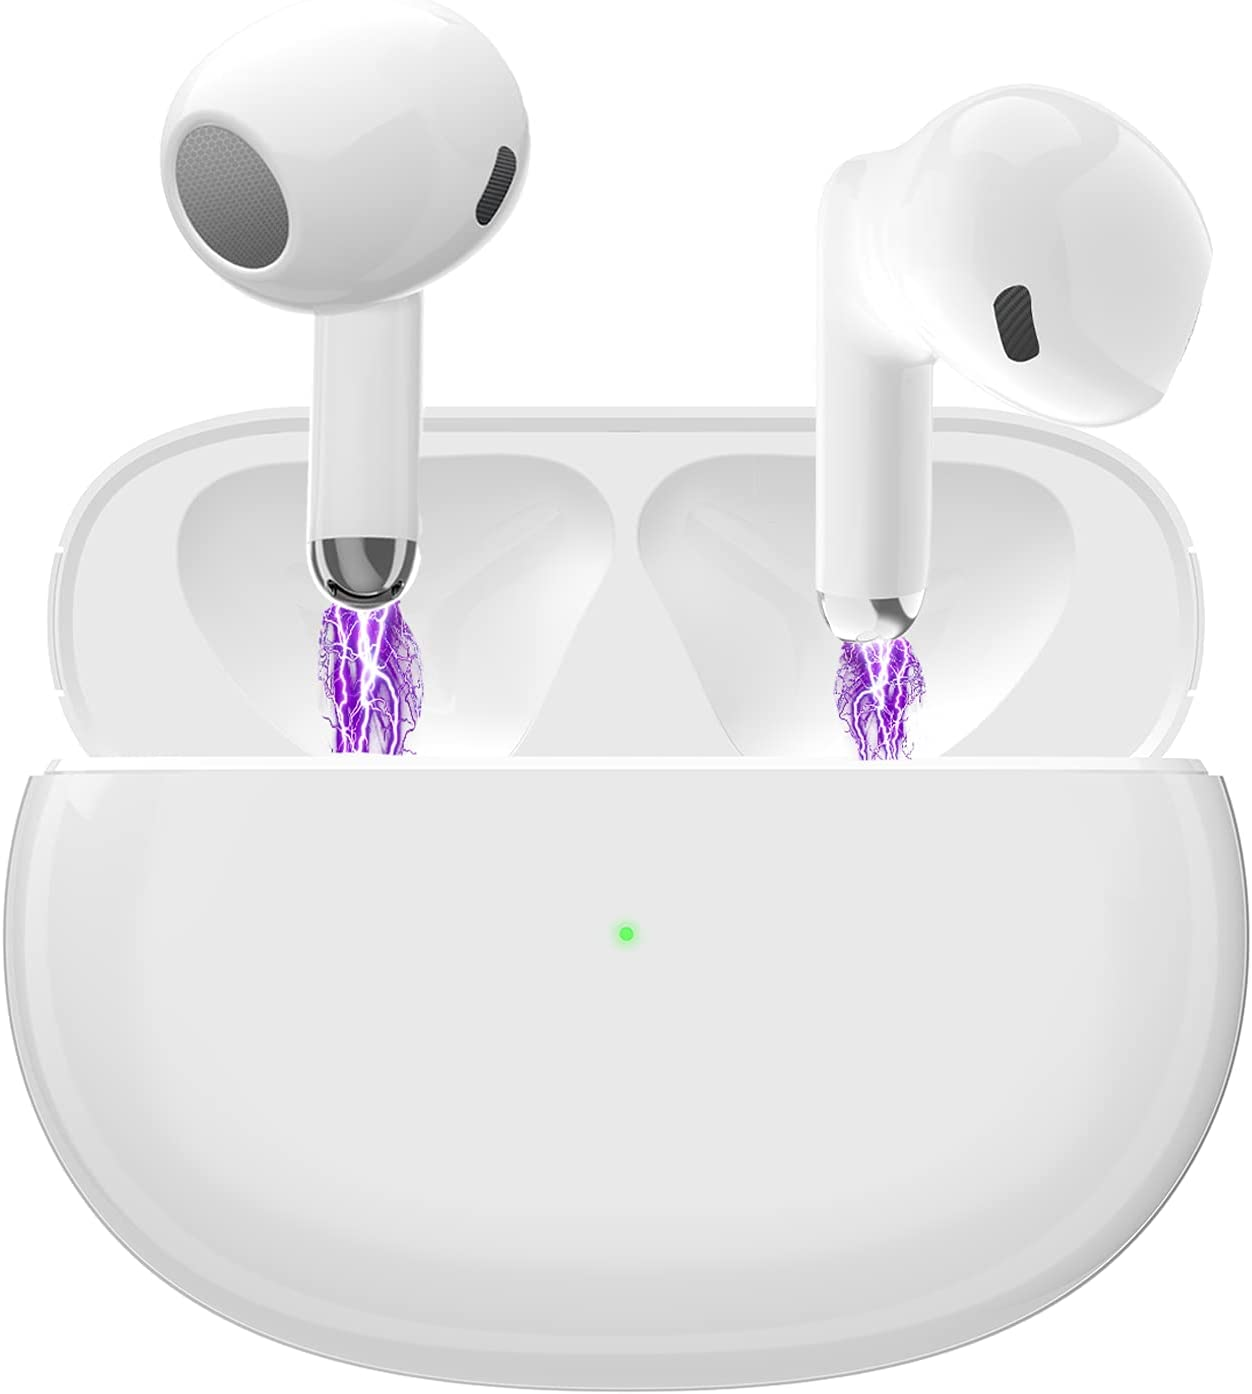 Wireless Earbuds Bluetooth 5.0 Noise Cancelling 3D Stereo Headphones with Mini Charging Case Smart Touch Control Ear Buds Earpods Air Buds in-Ear Ear Buds for iPhone/iOS/Android